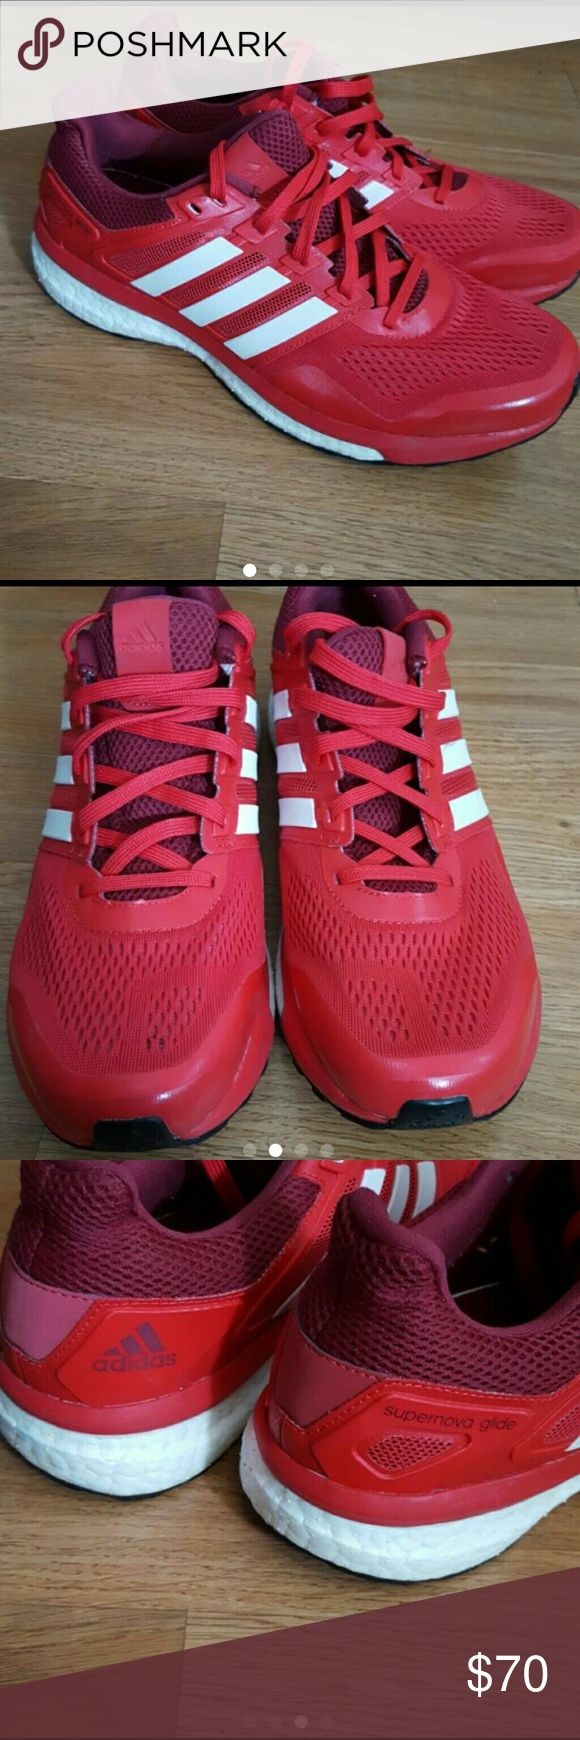 Adidas Supernova glide size 10 In great condition Adidas Shoes Athletic Shoes